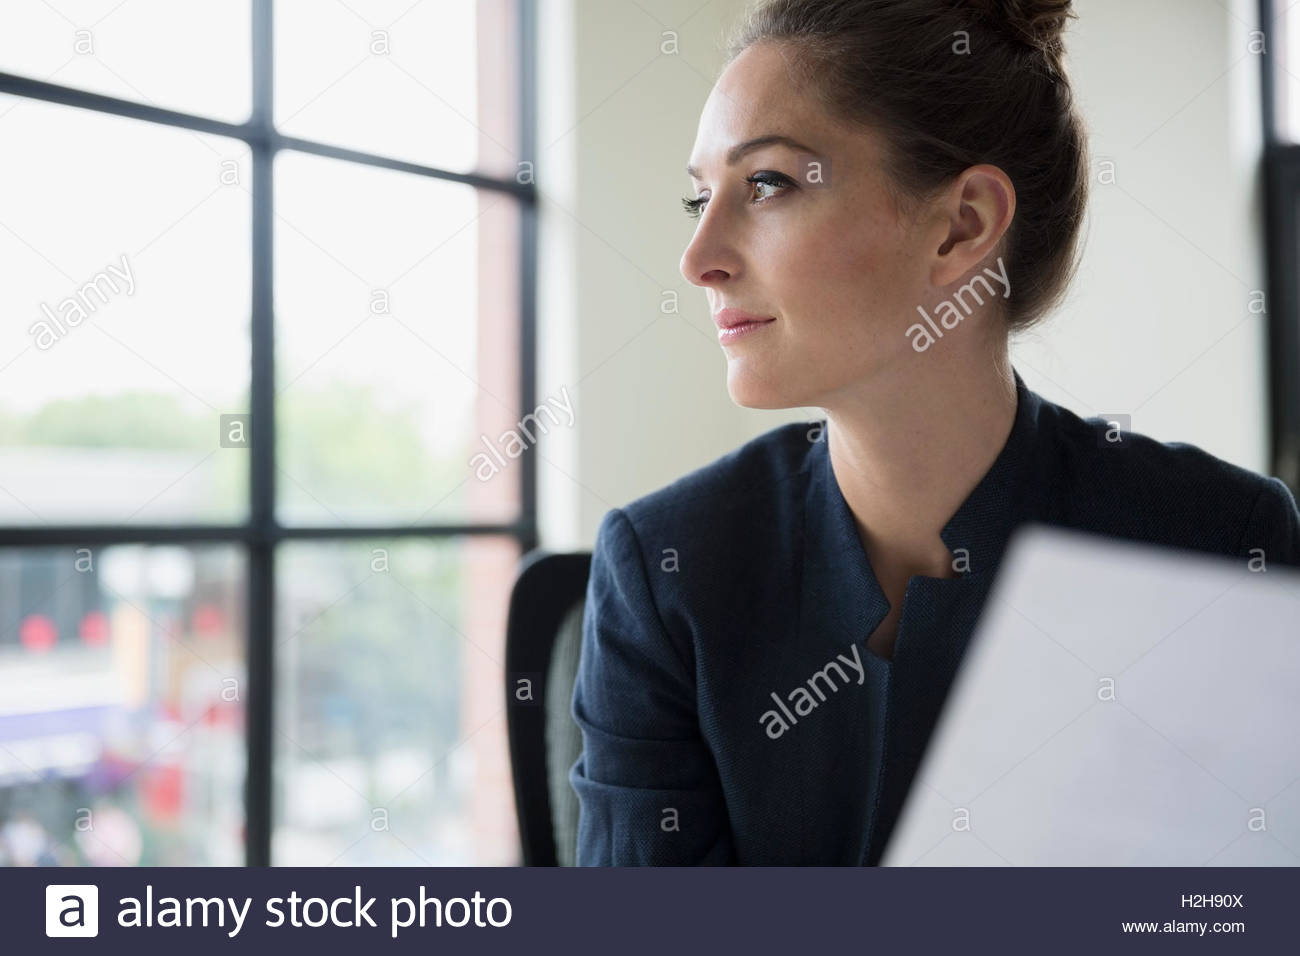 Pensive businesswoman with paperwork looking out office window - Stock Image